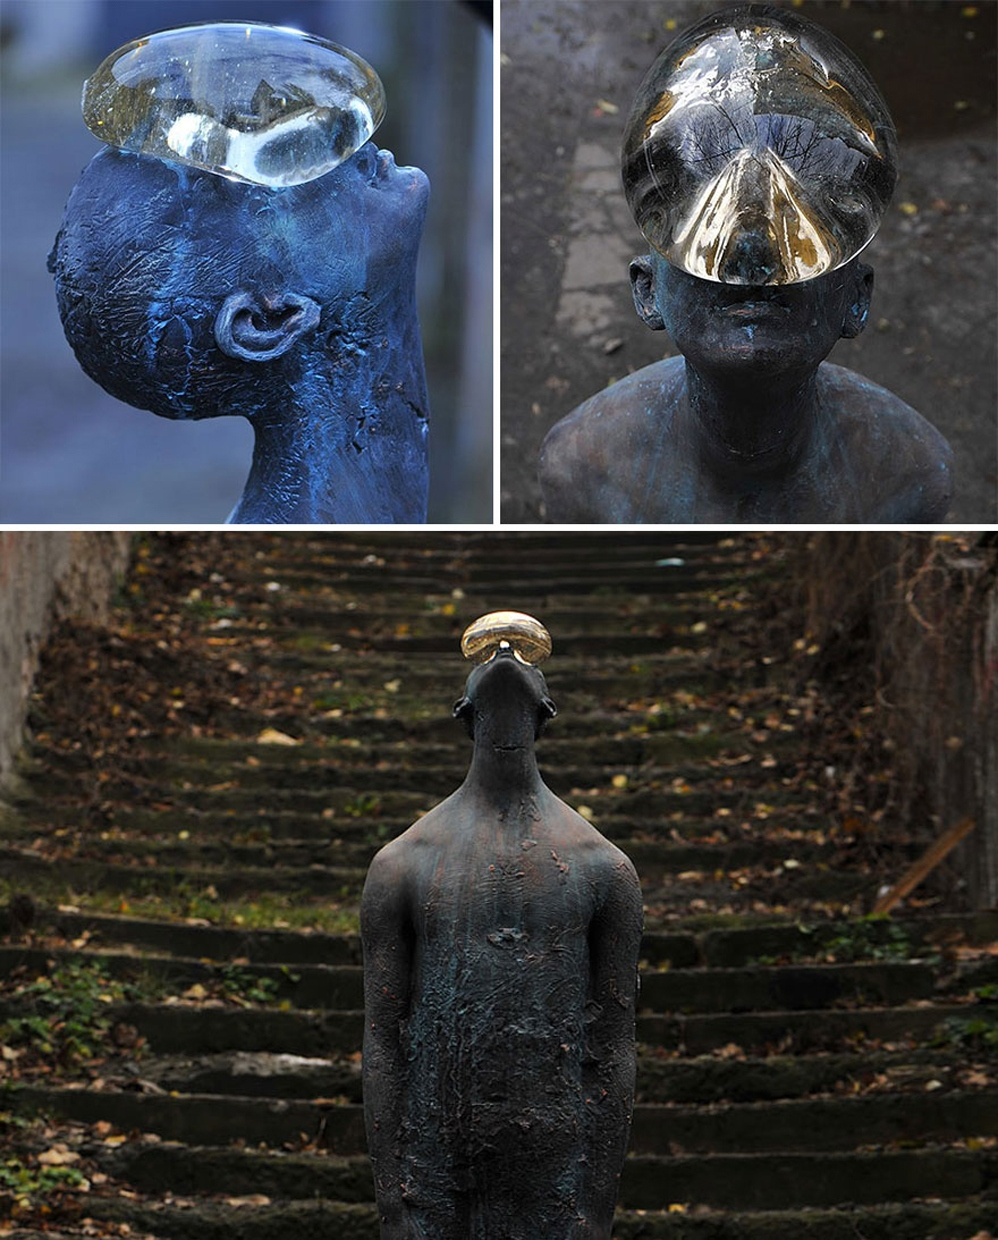 Raindrop statue-Nazar Bilyk Raindrop - Ukraine -most creative sculpture around the world